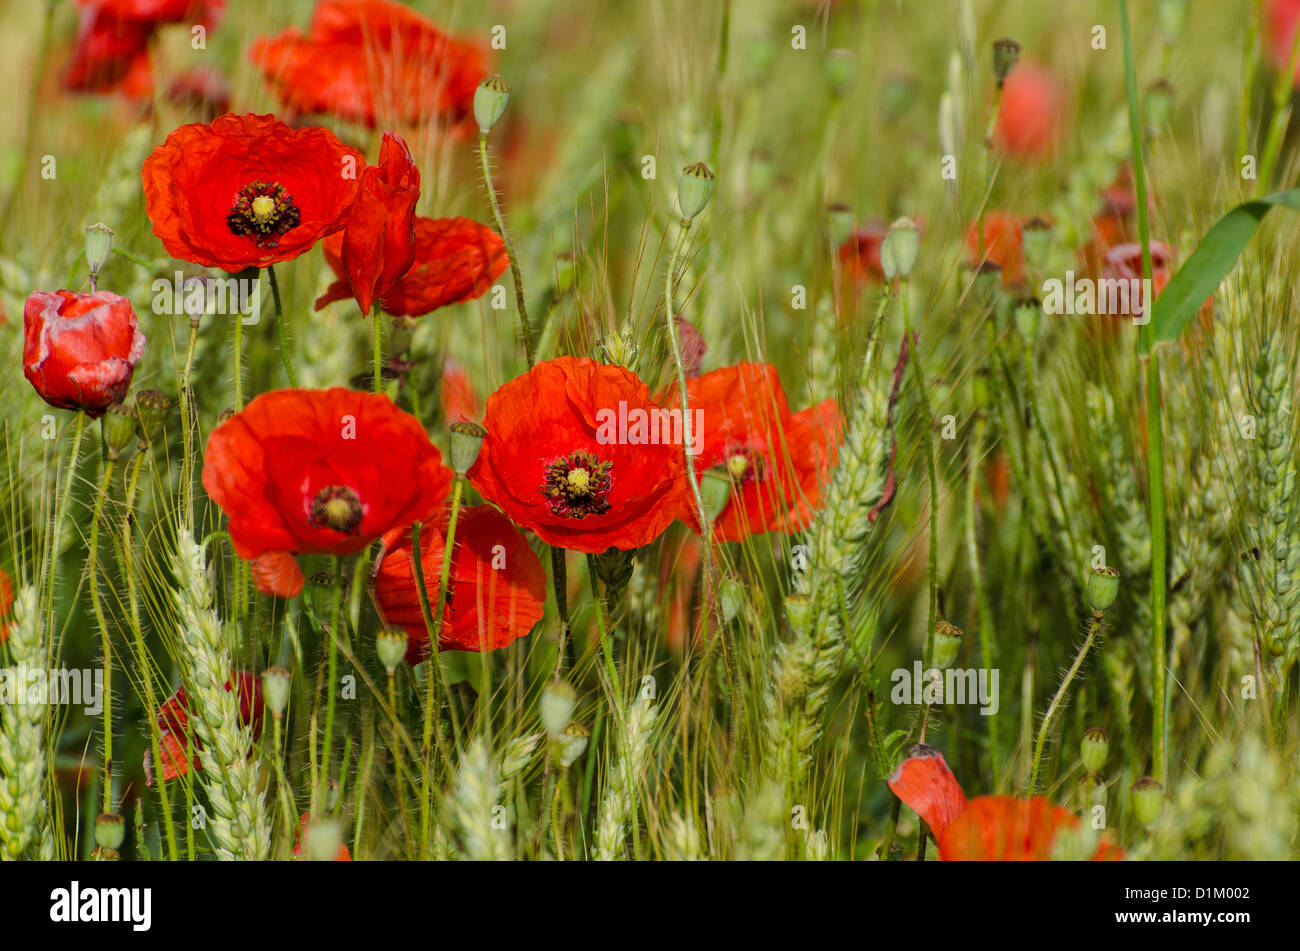 Poppies field - Stock Image